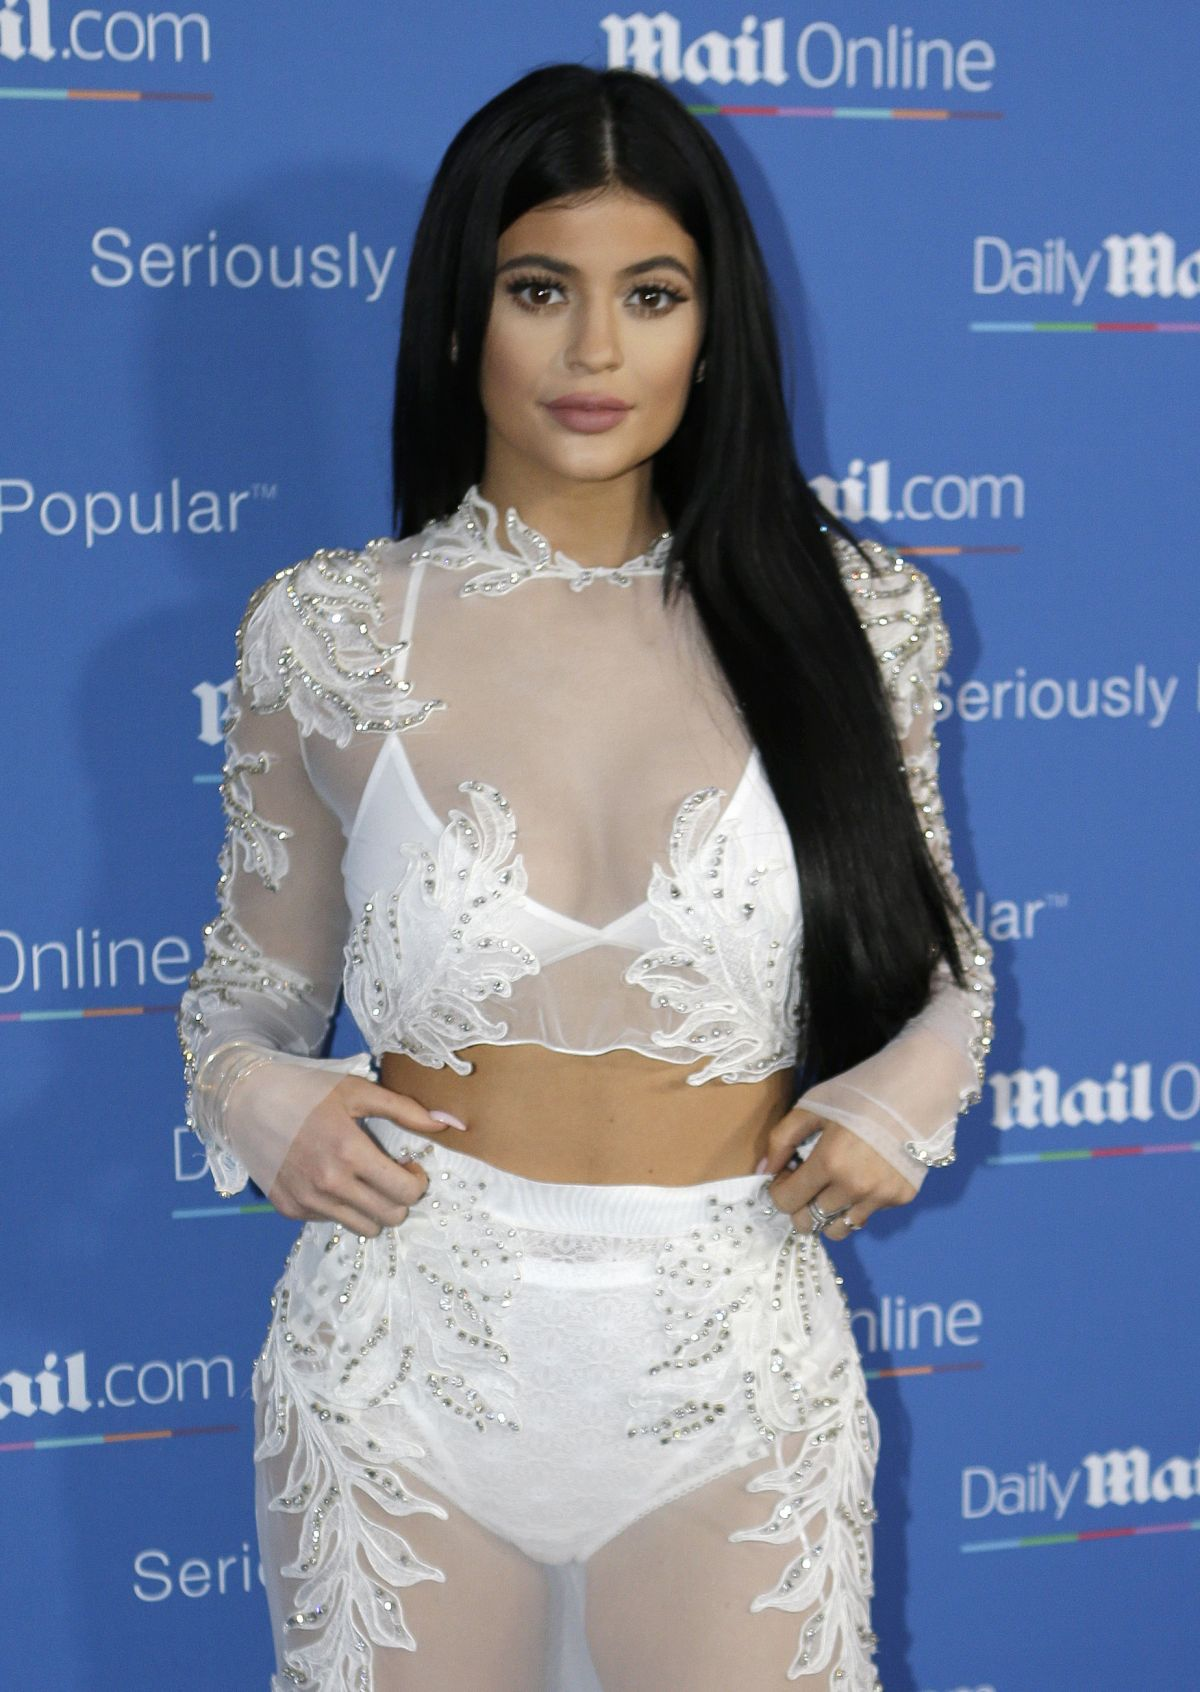 KYLIE JENNER at dailymail.com Seriously Popular Yacht Party in Cannes